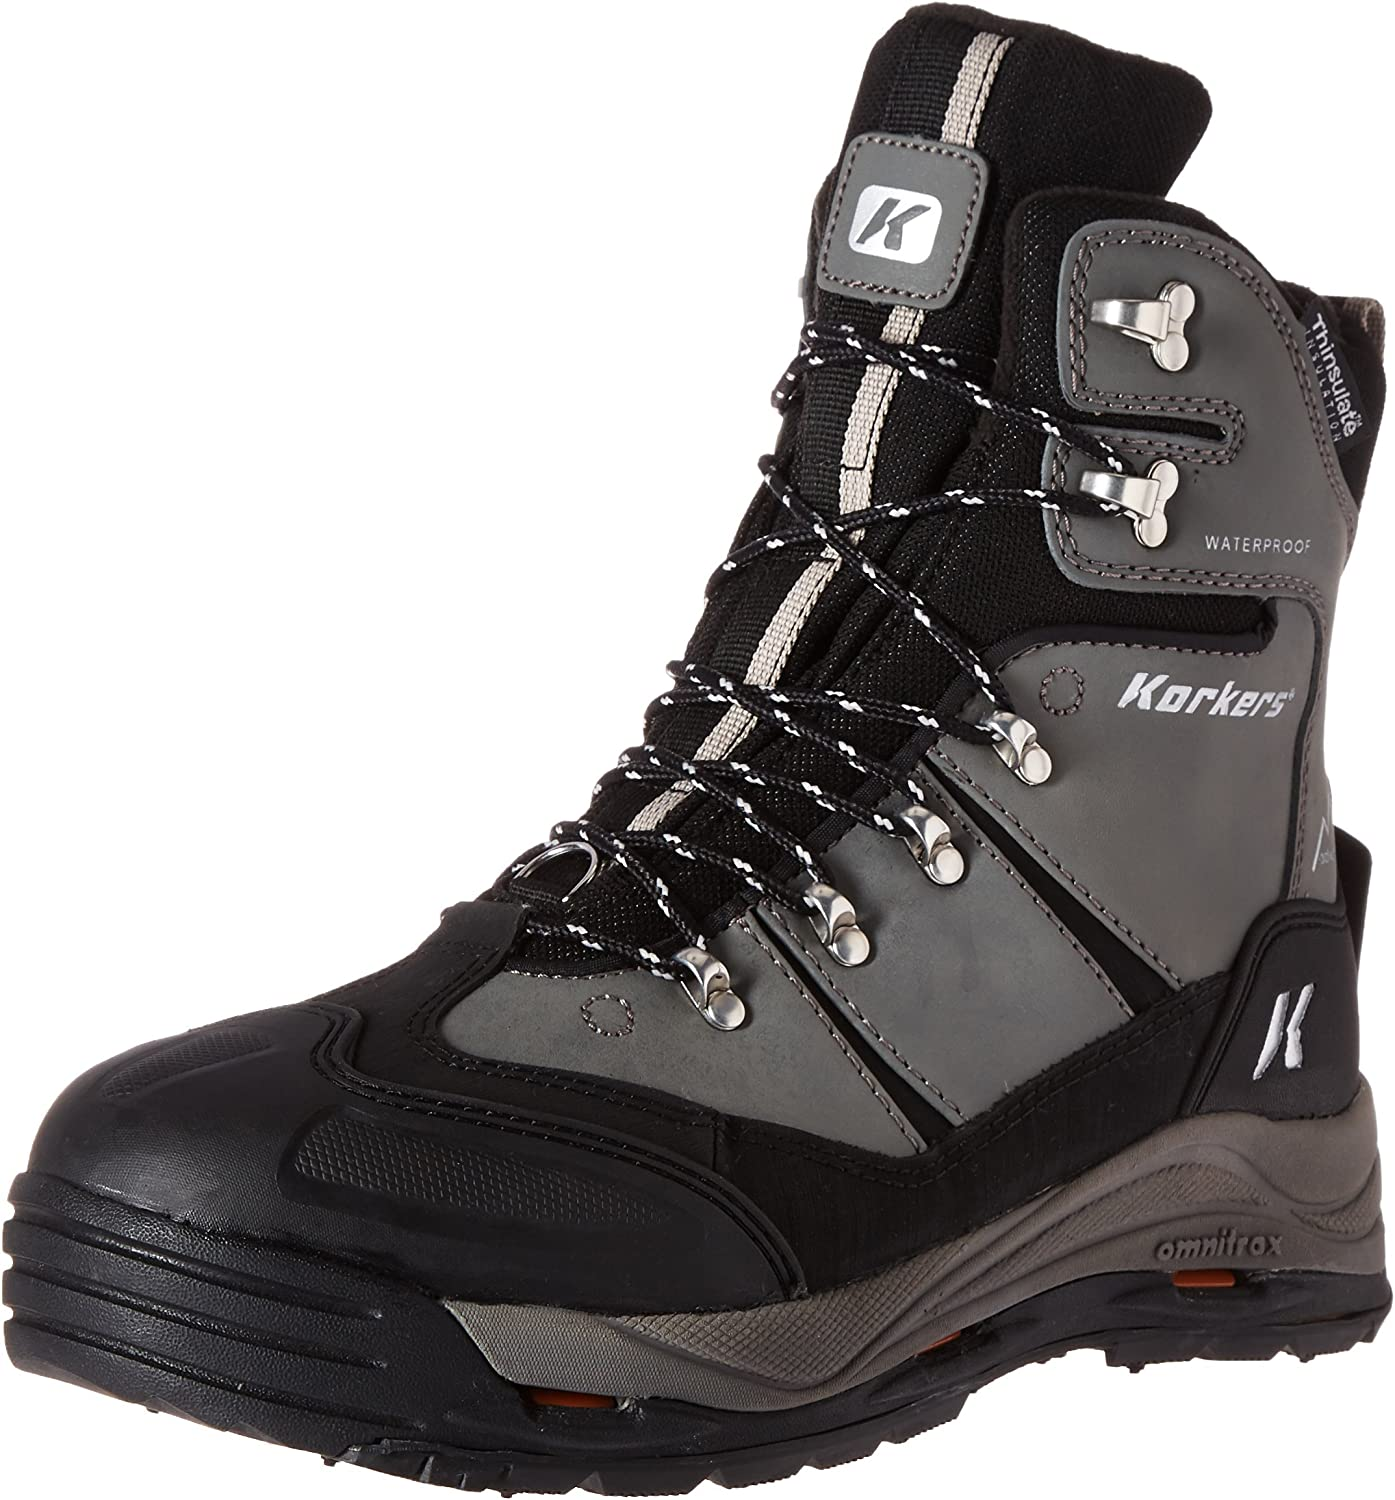 SALENEW very popular 2021 new Korkers SnowJack with SnowTrac and Outdoor Boot IceTrac Outsoles